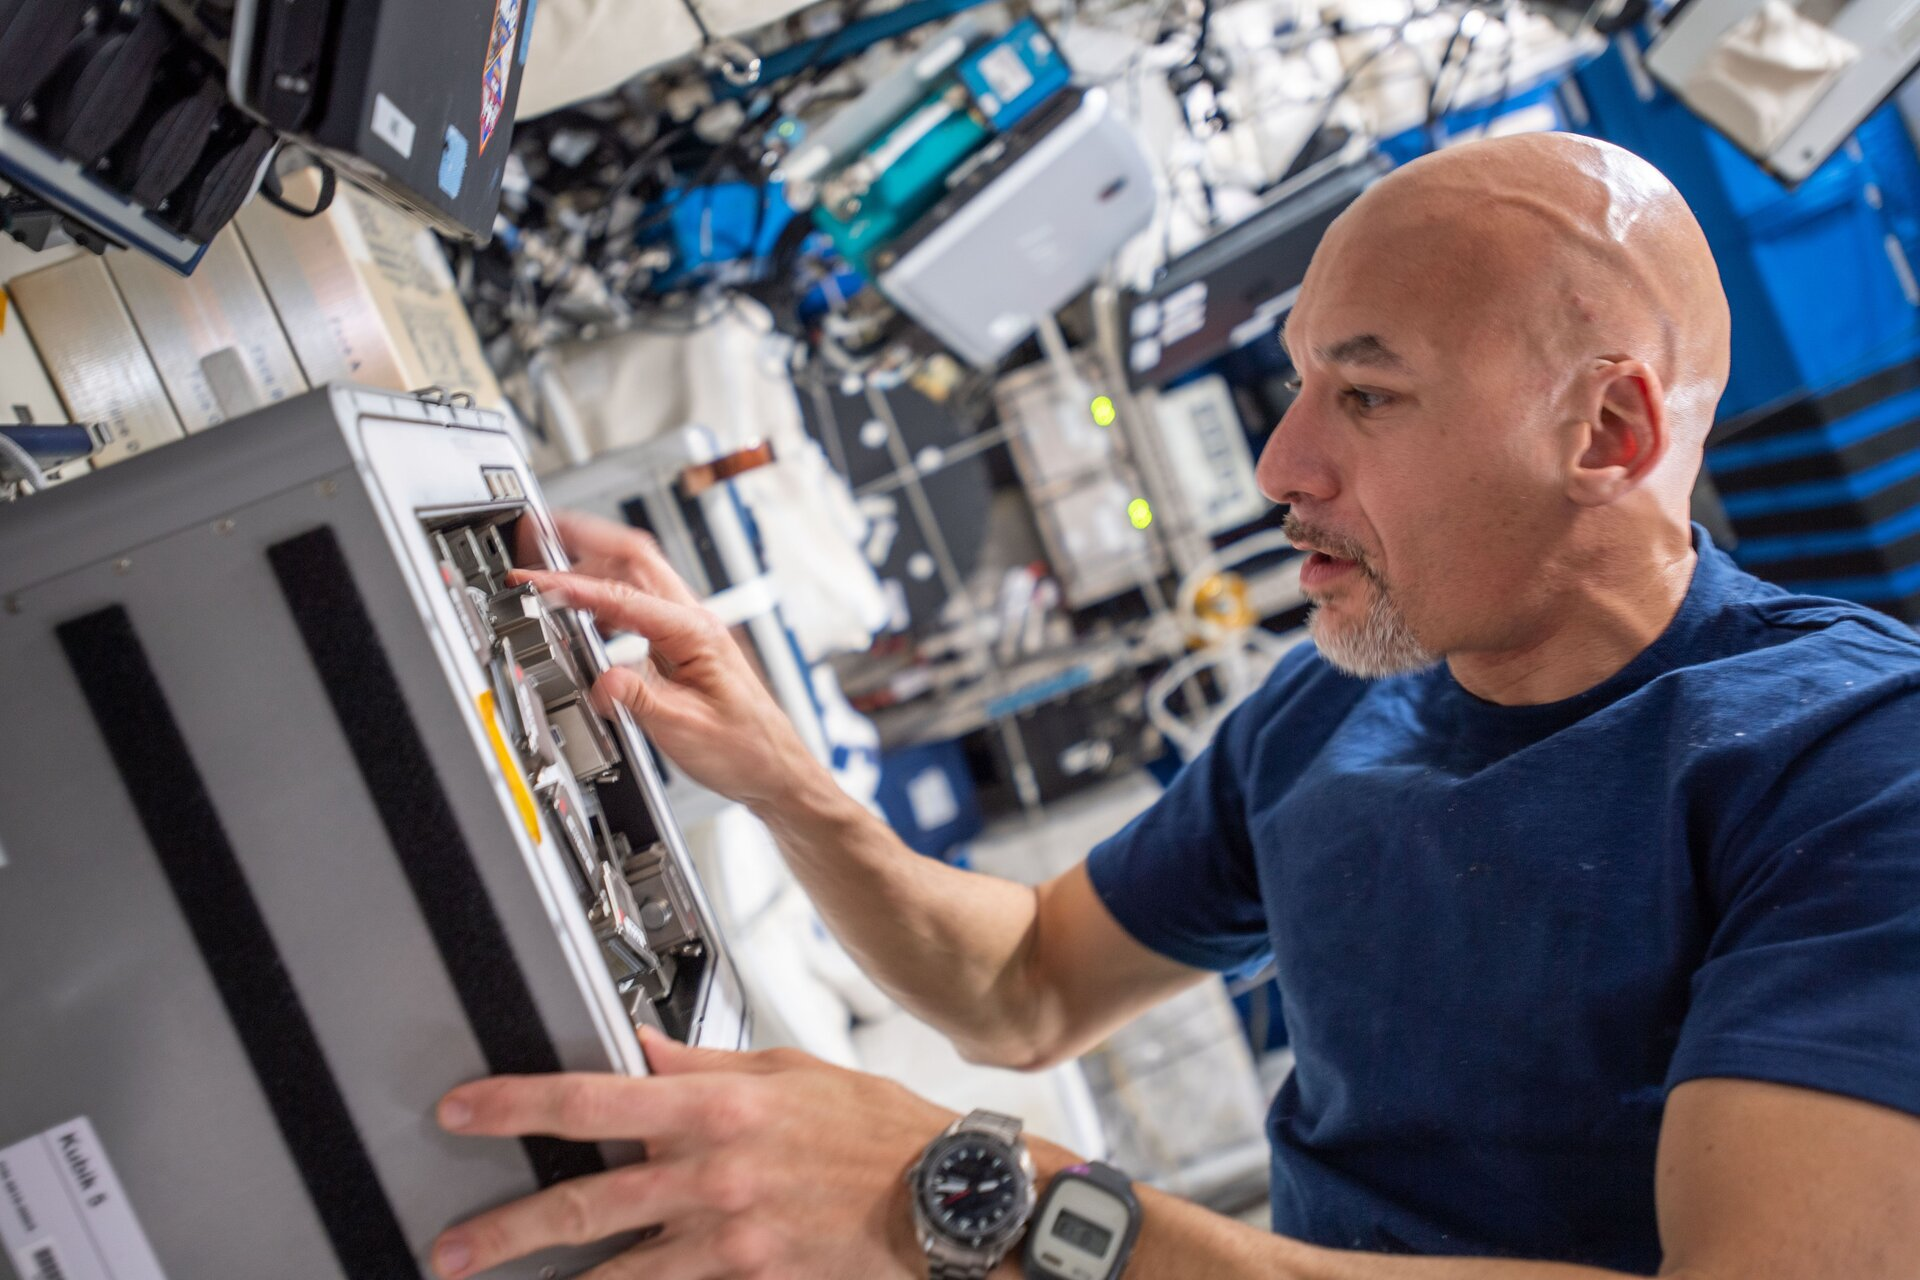 Luca installs Biorock in the Space Station's Kubik facility